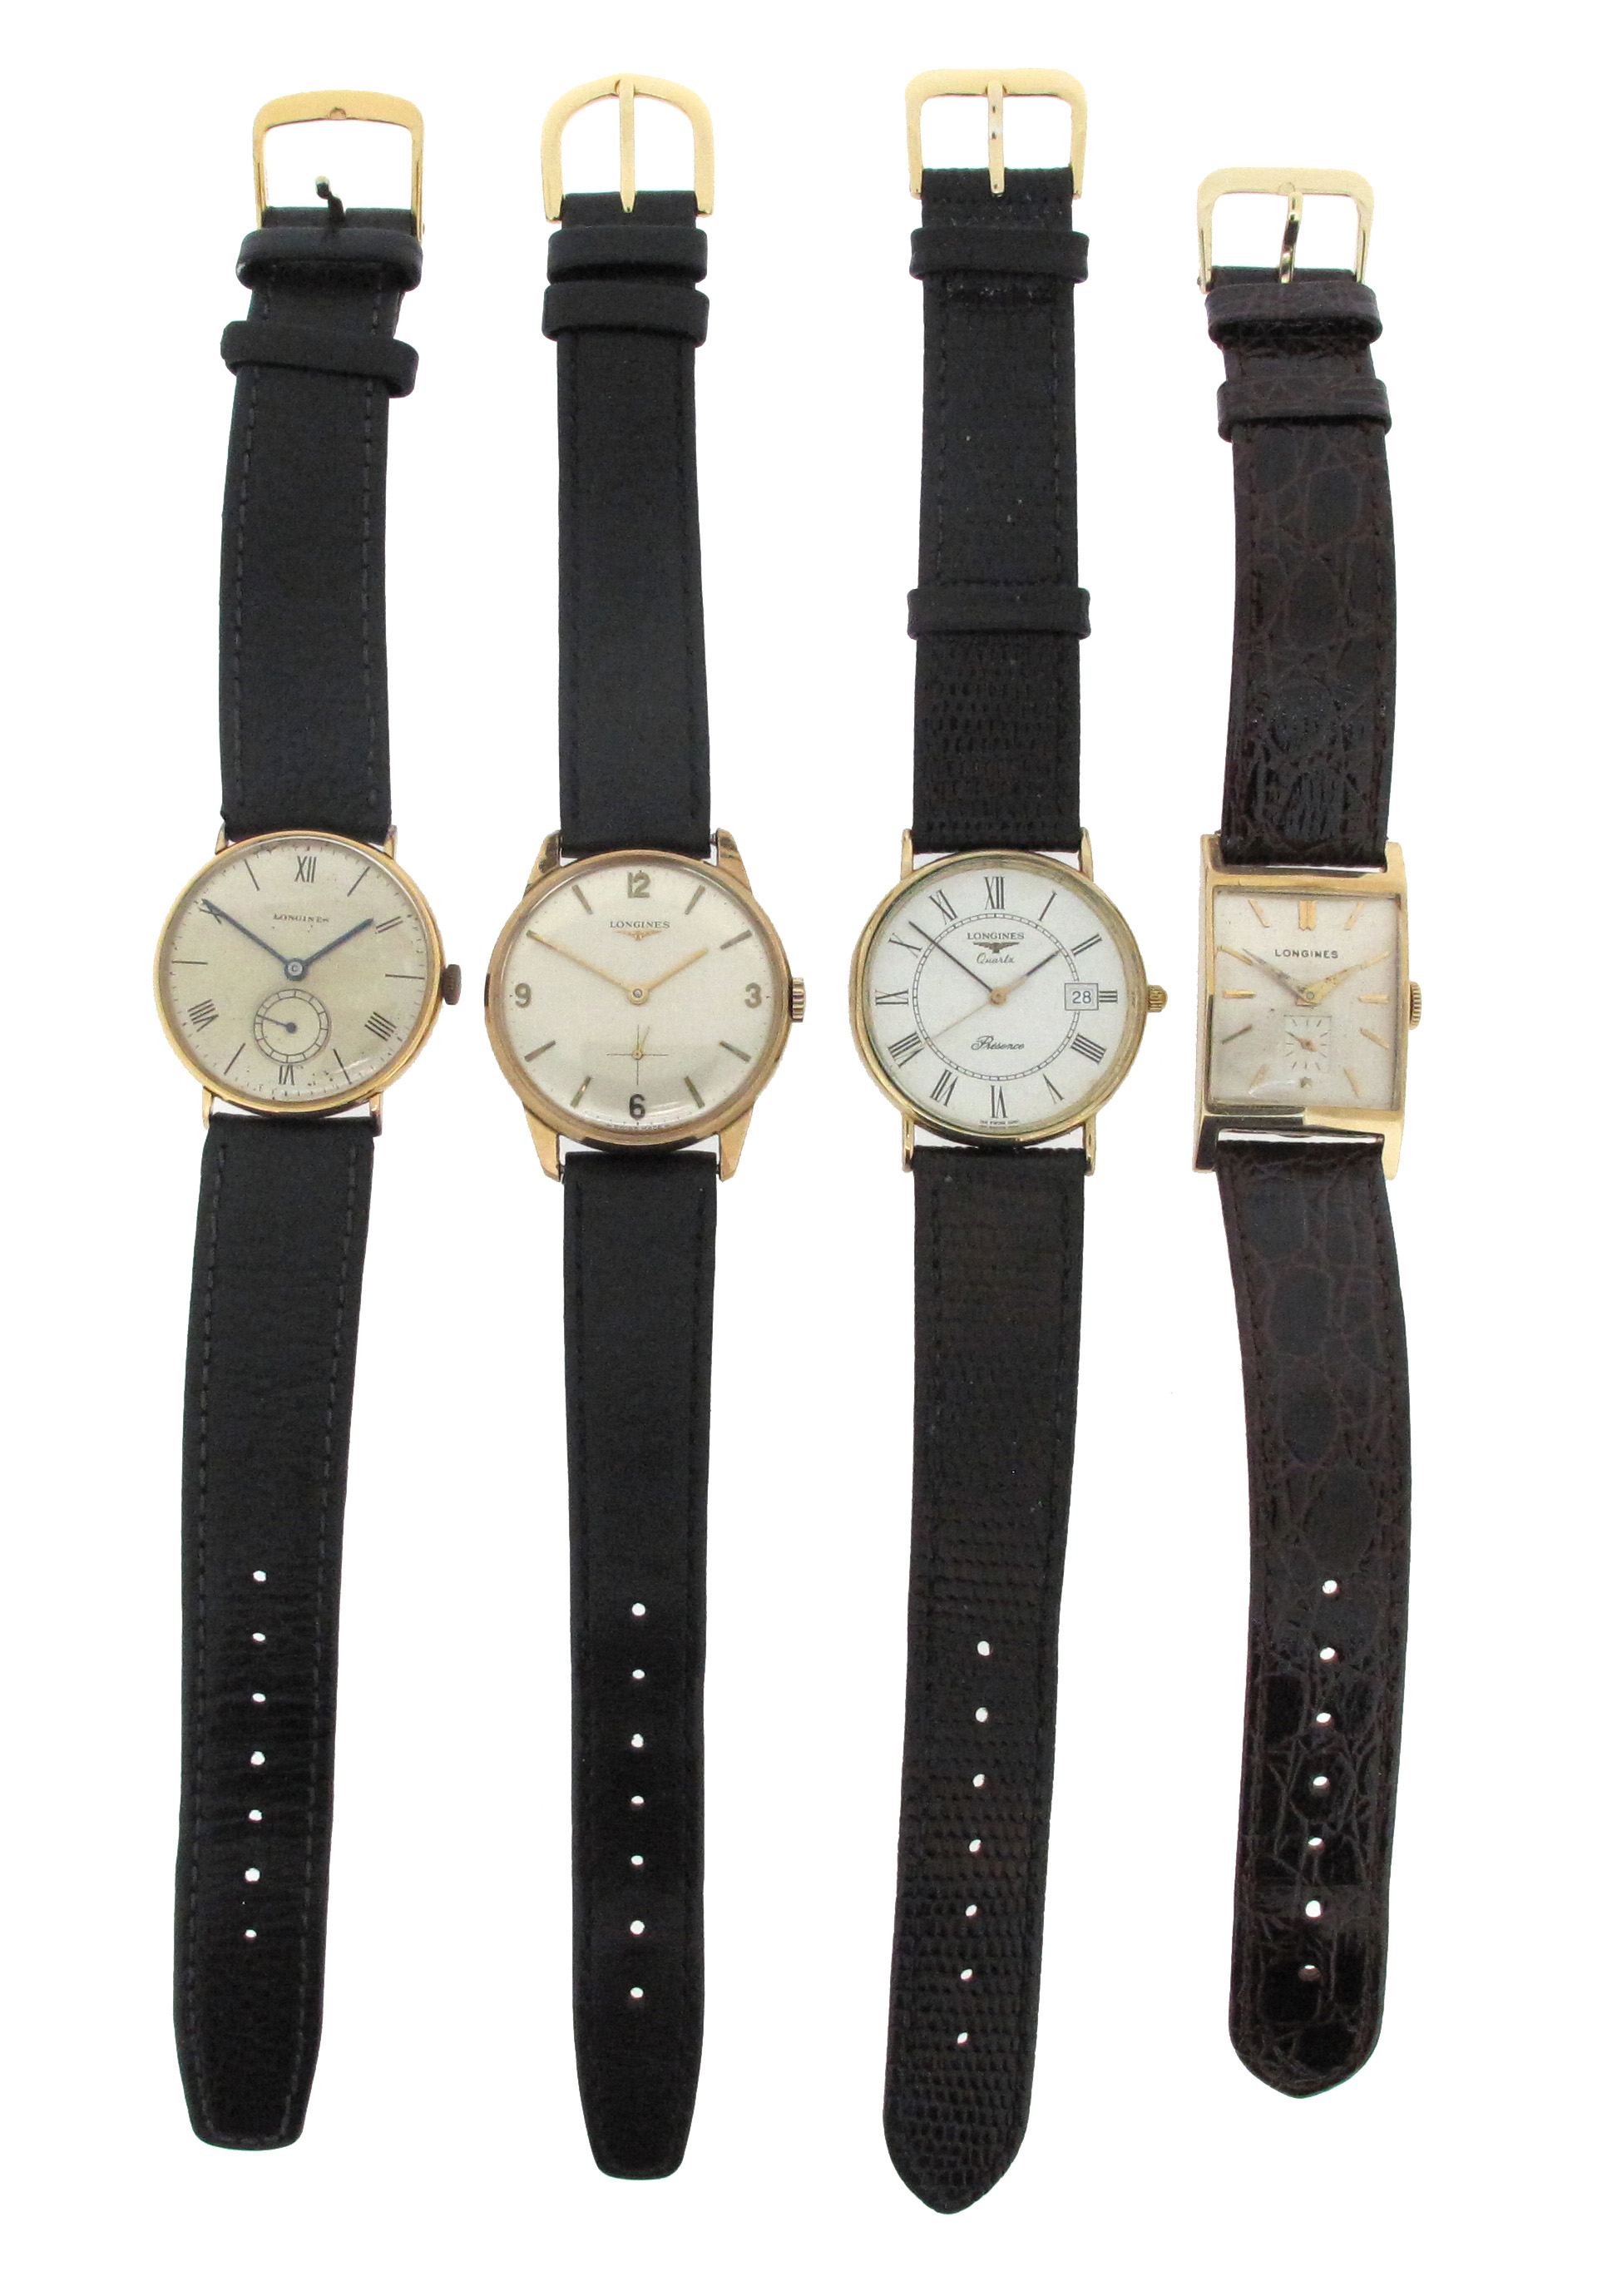 Four gold wristwatches by Longines